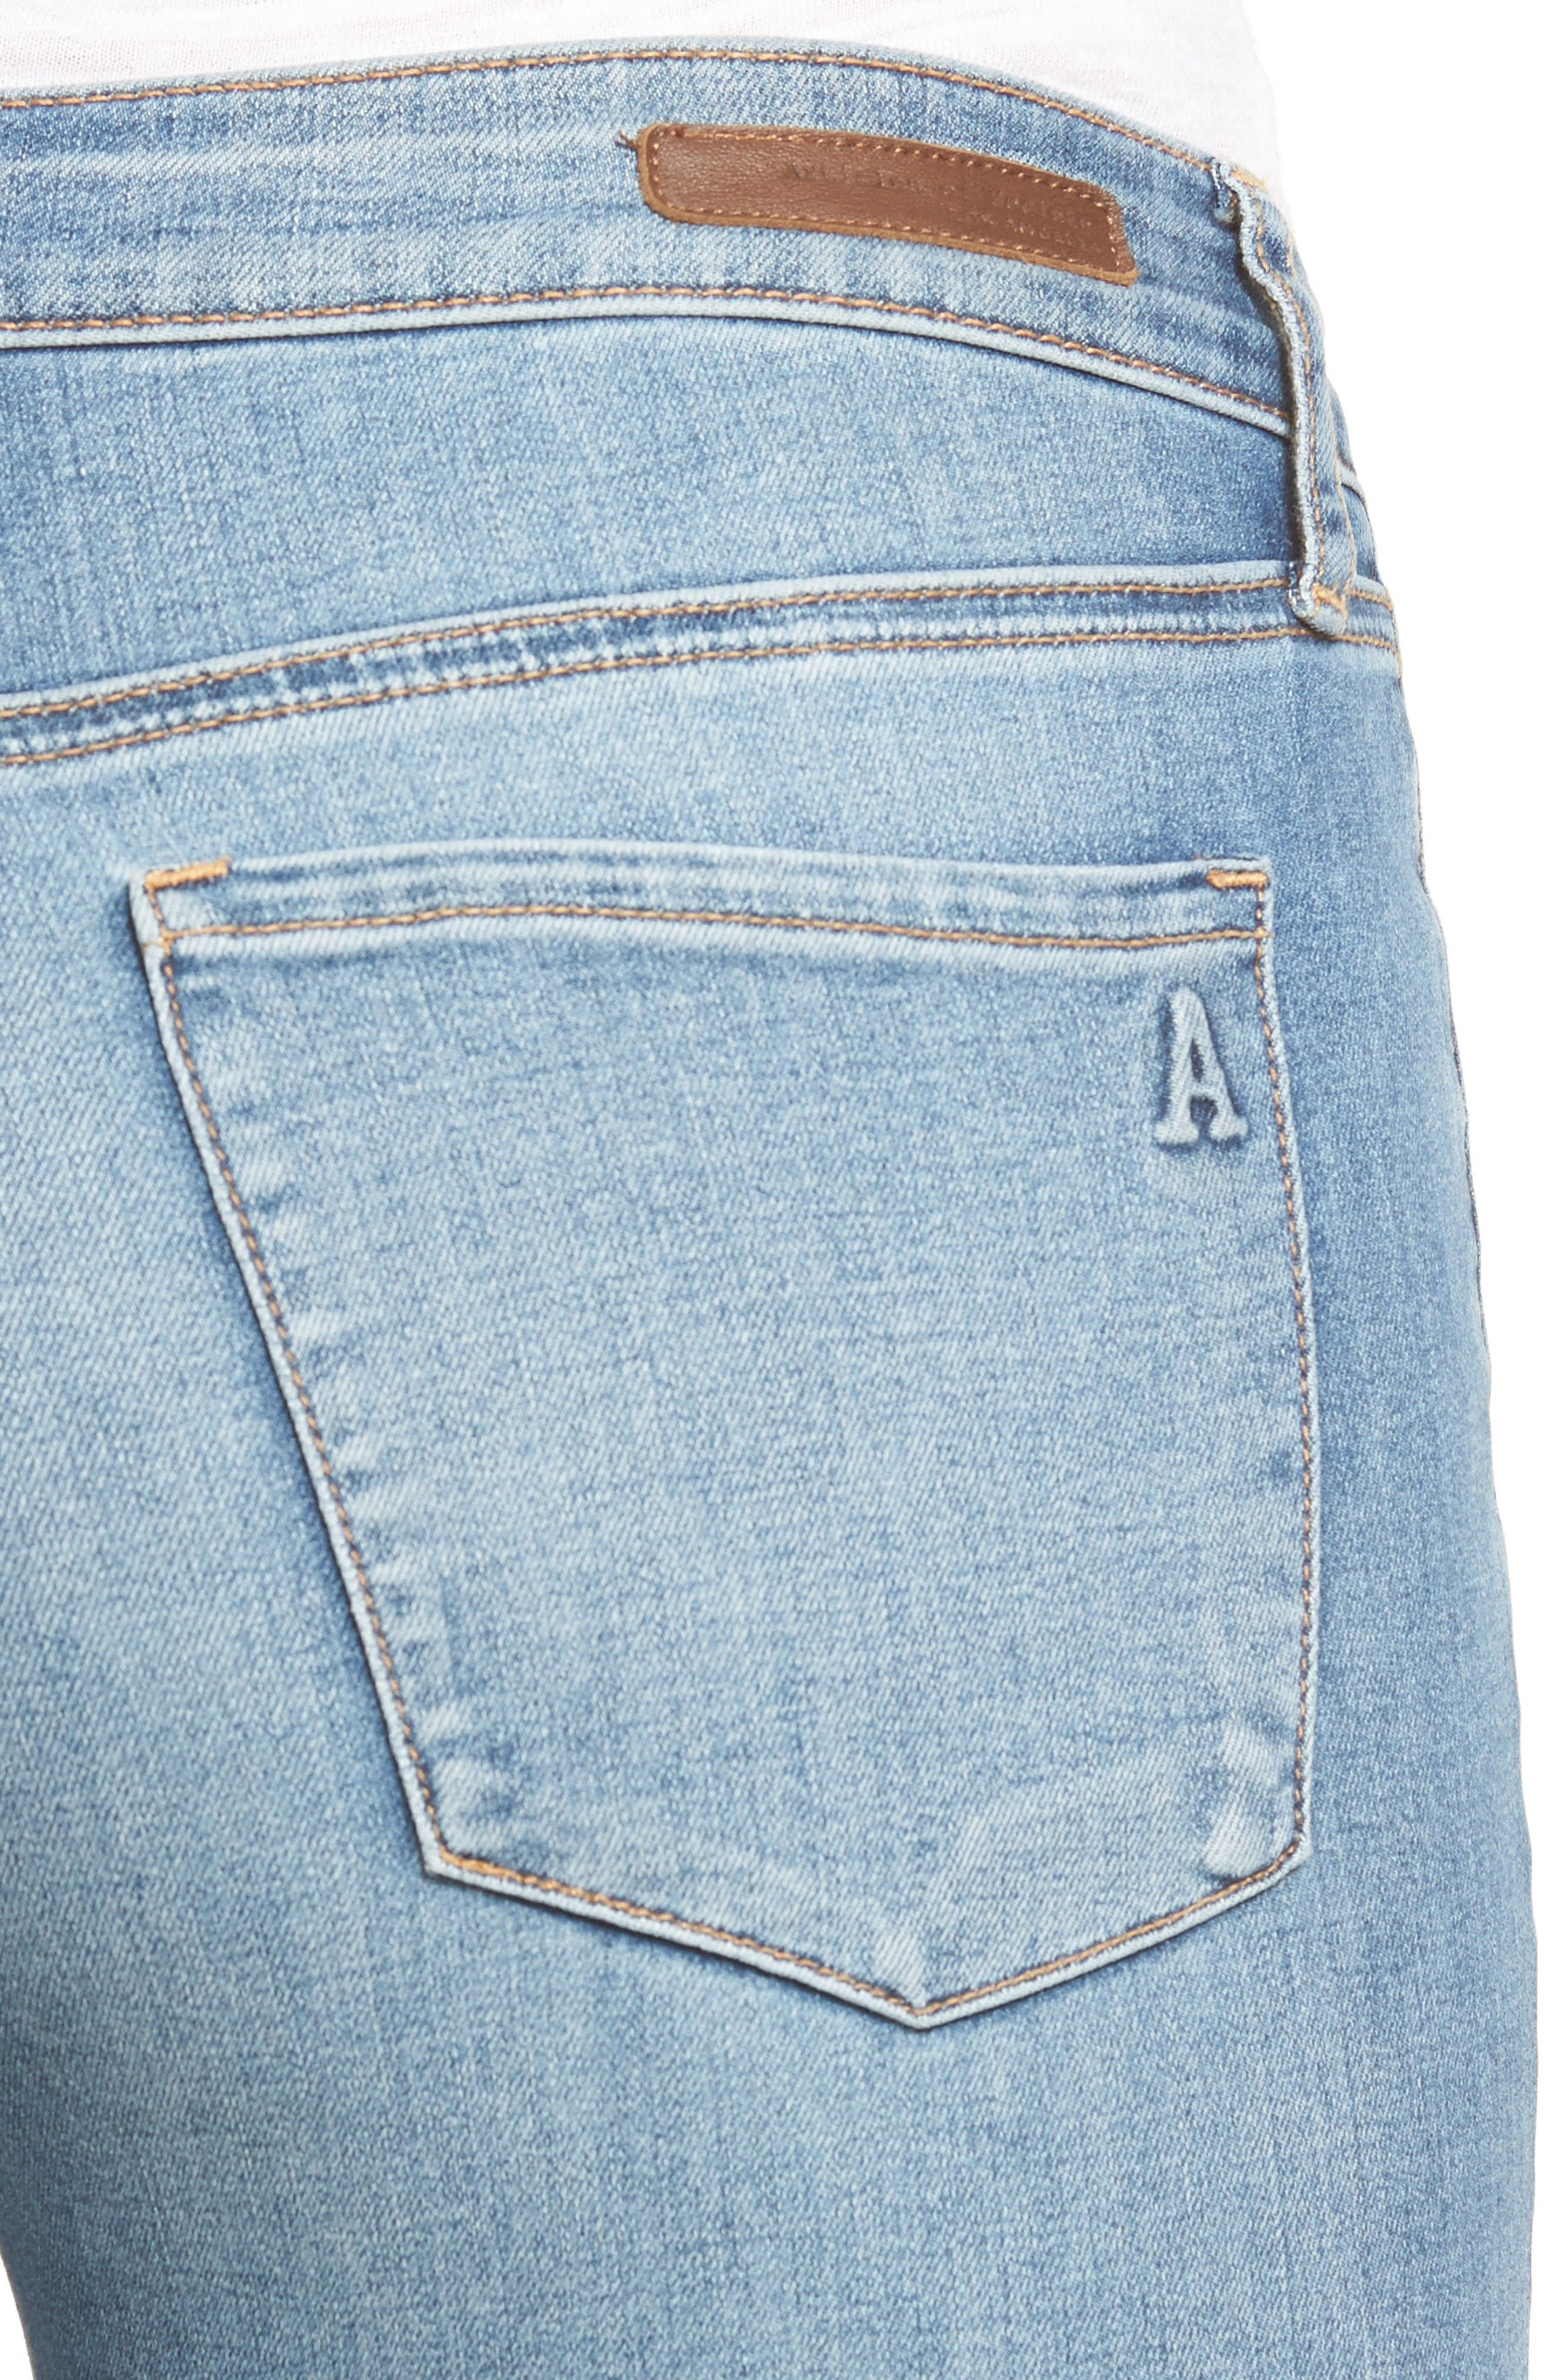 Alternate Image 4  - Articles of Society Carly Skinny Crop Jeans (Derby)